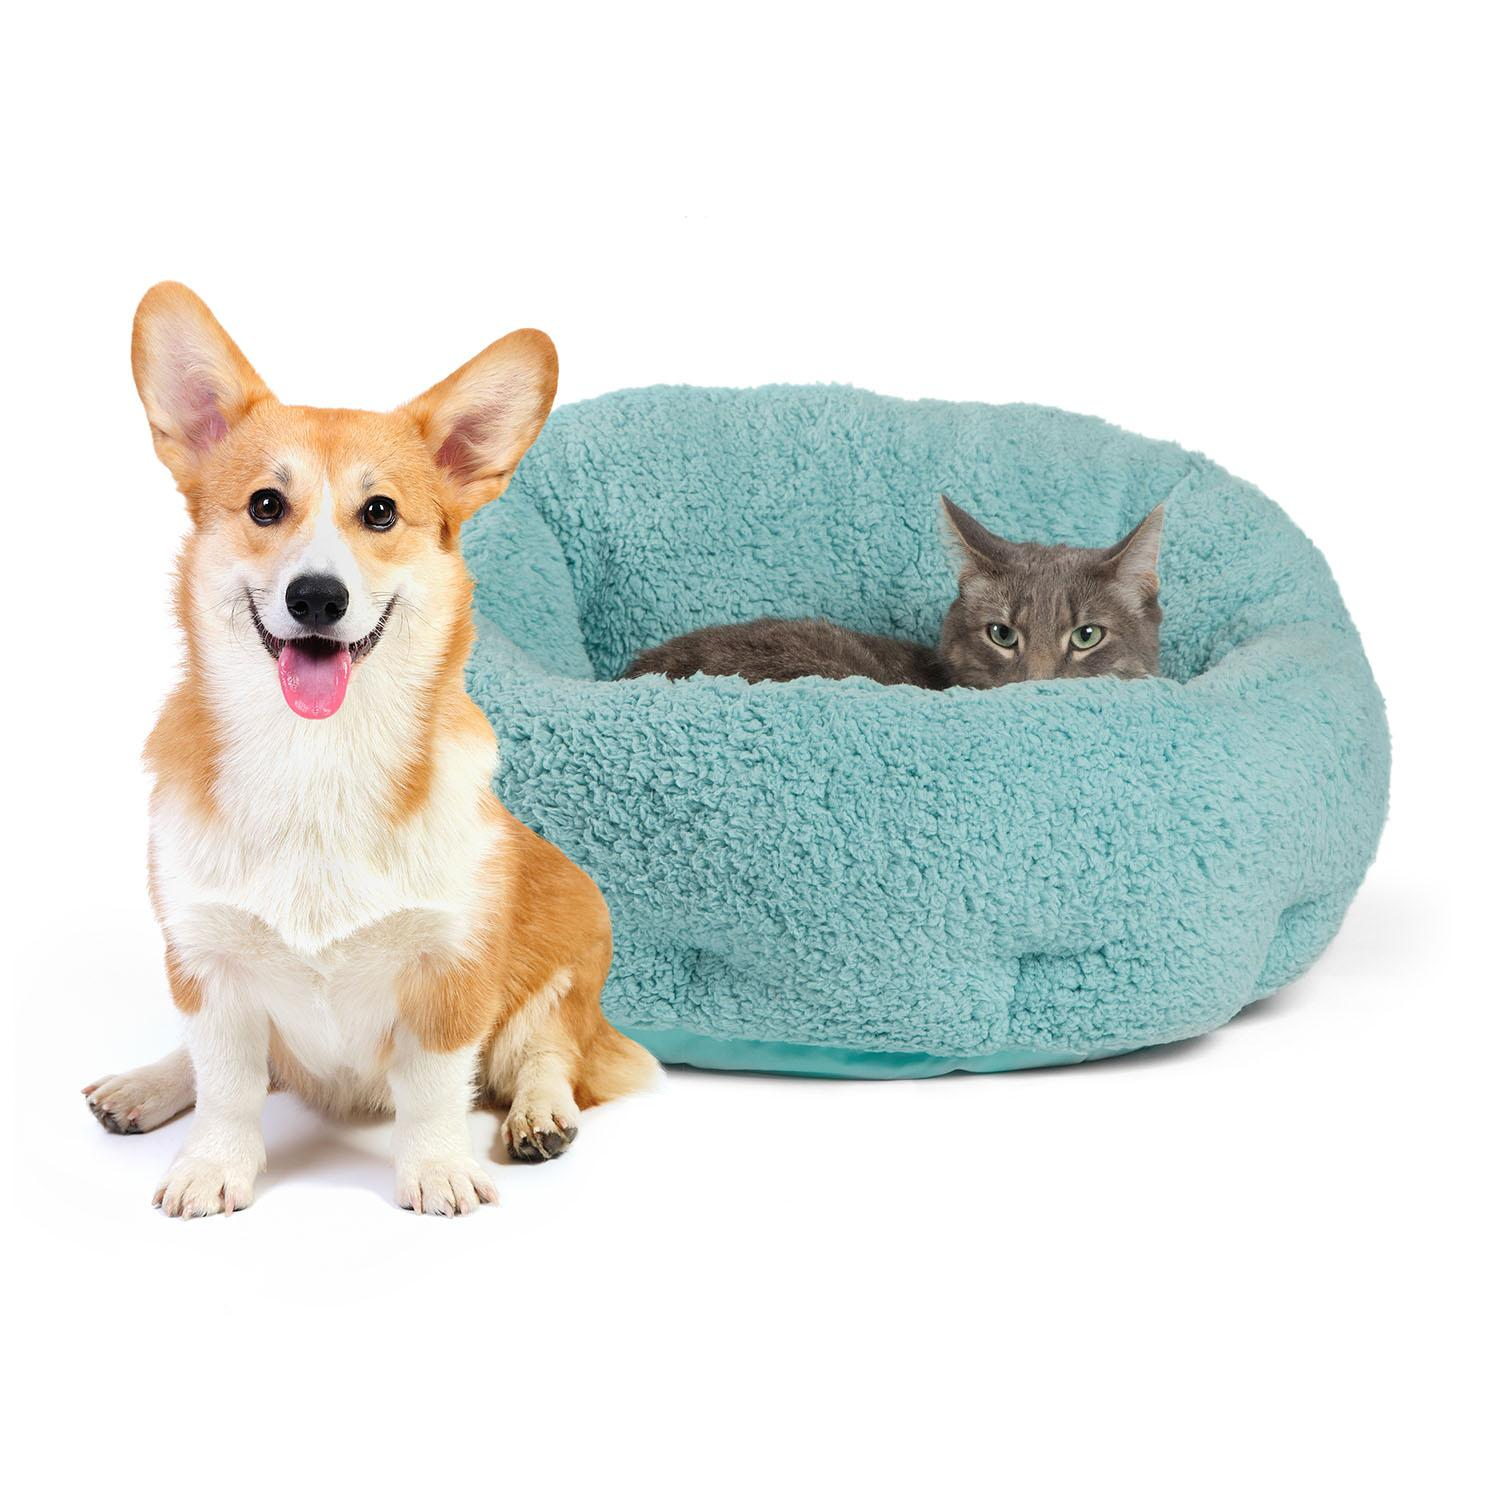 Amazon.com : Best Friends by Sheri OrthoComfort Deep Dish